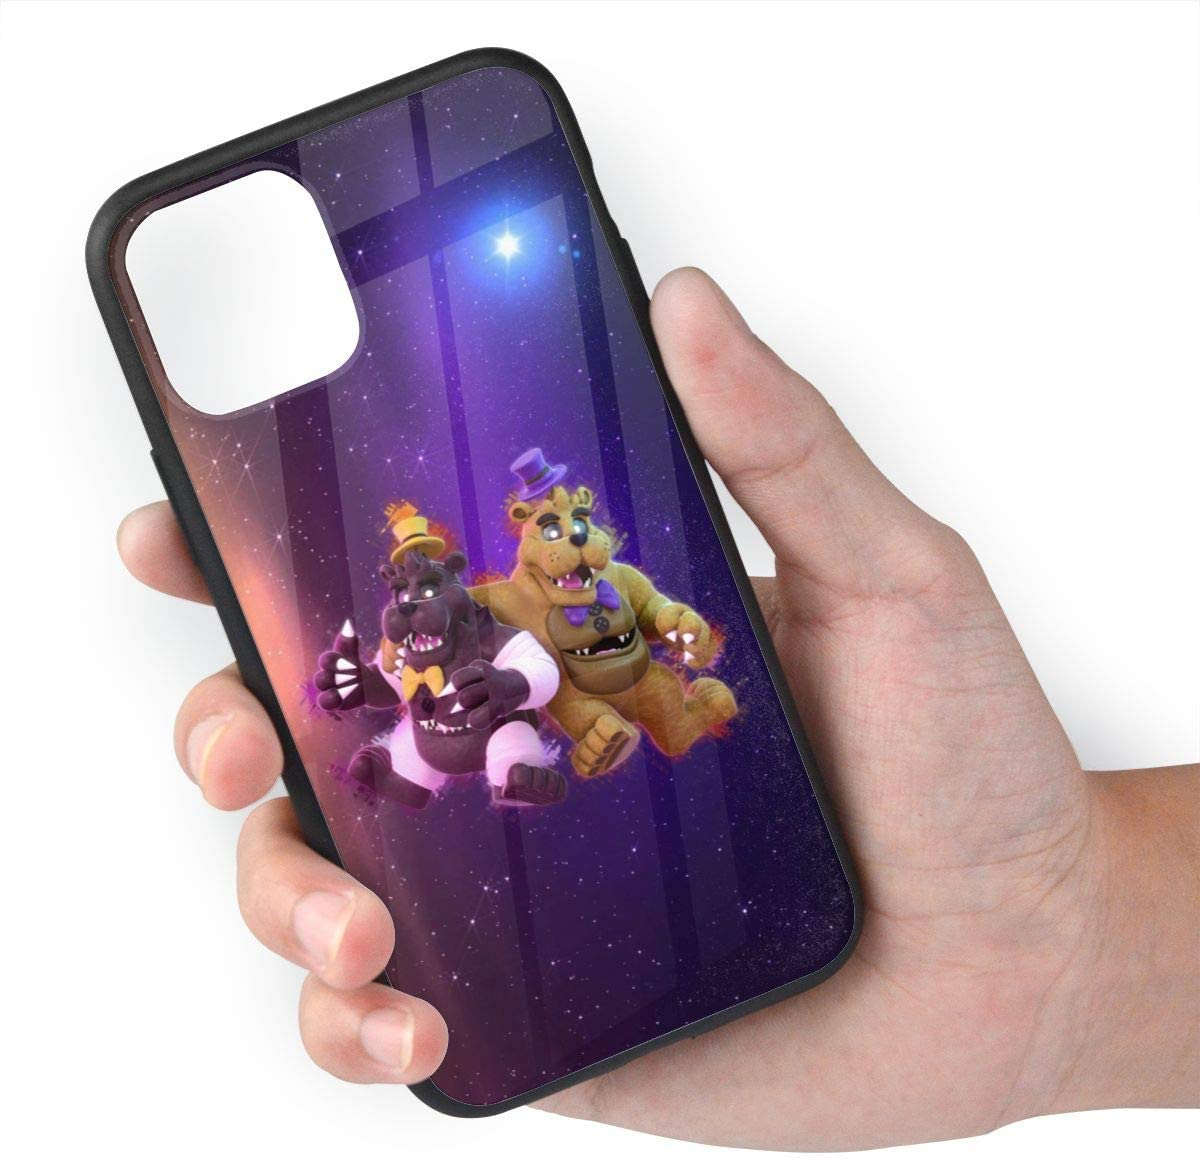 Five Nights at Freddy's Bear iPhone 11 Protective Case Soft and Flexible TPU Glass Ultra-Thin Shockproof Bumper Cover